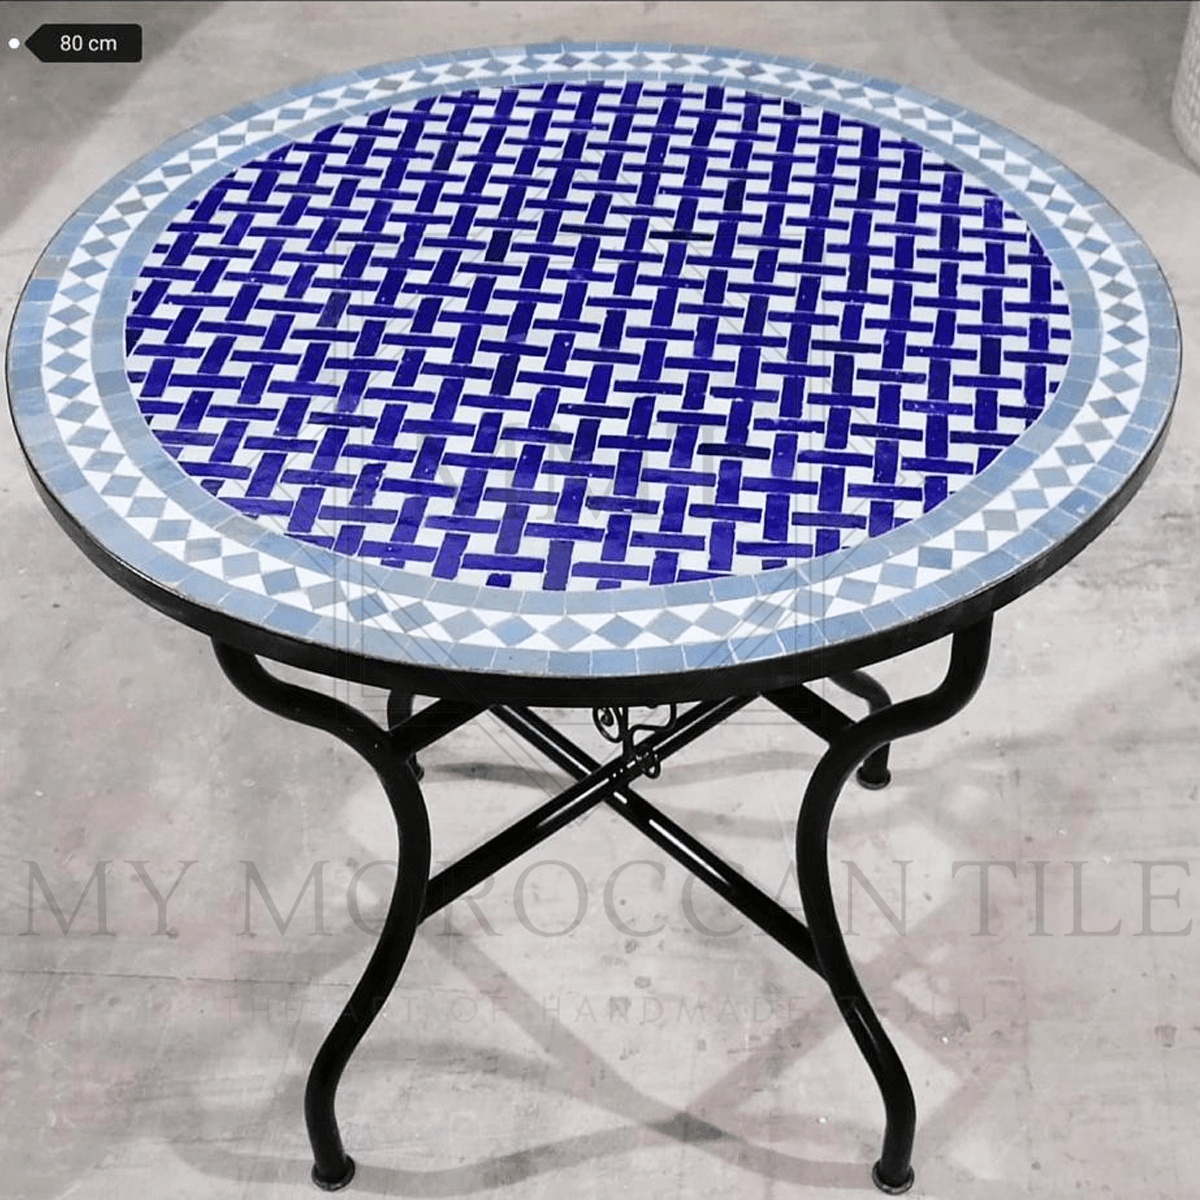 Handmade Moroccan Mosaic Table 2104-07